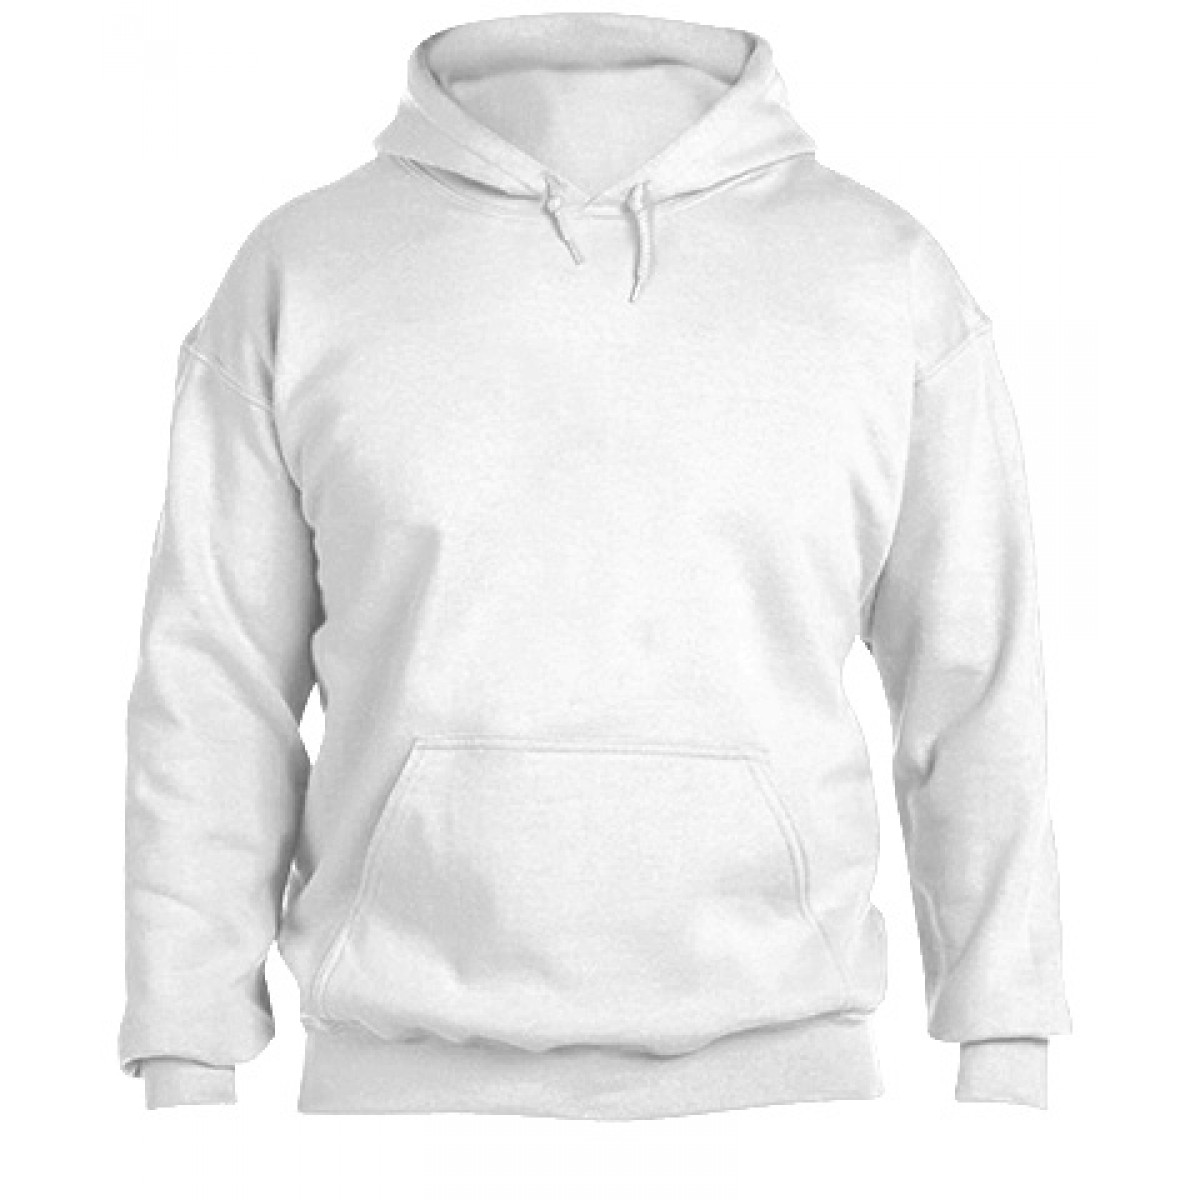 Solid Hooded Sweatshirt  50/50 Heavy Blend-White-M